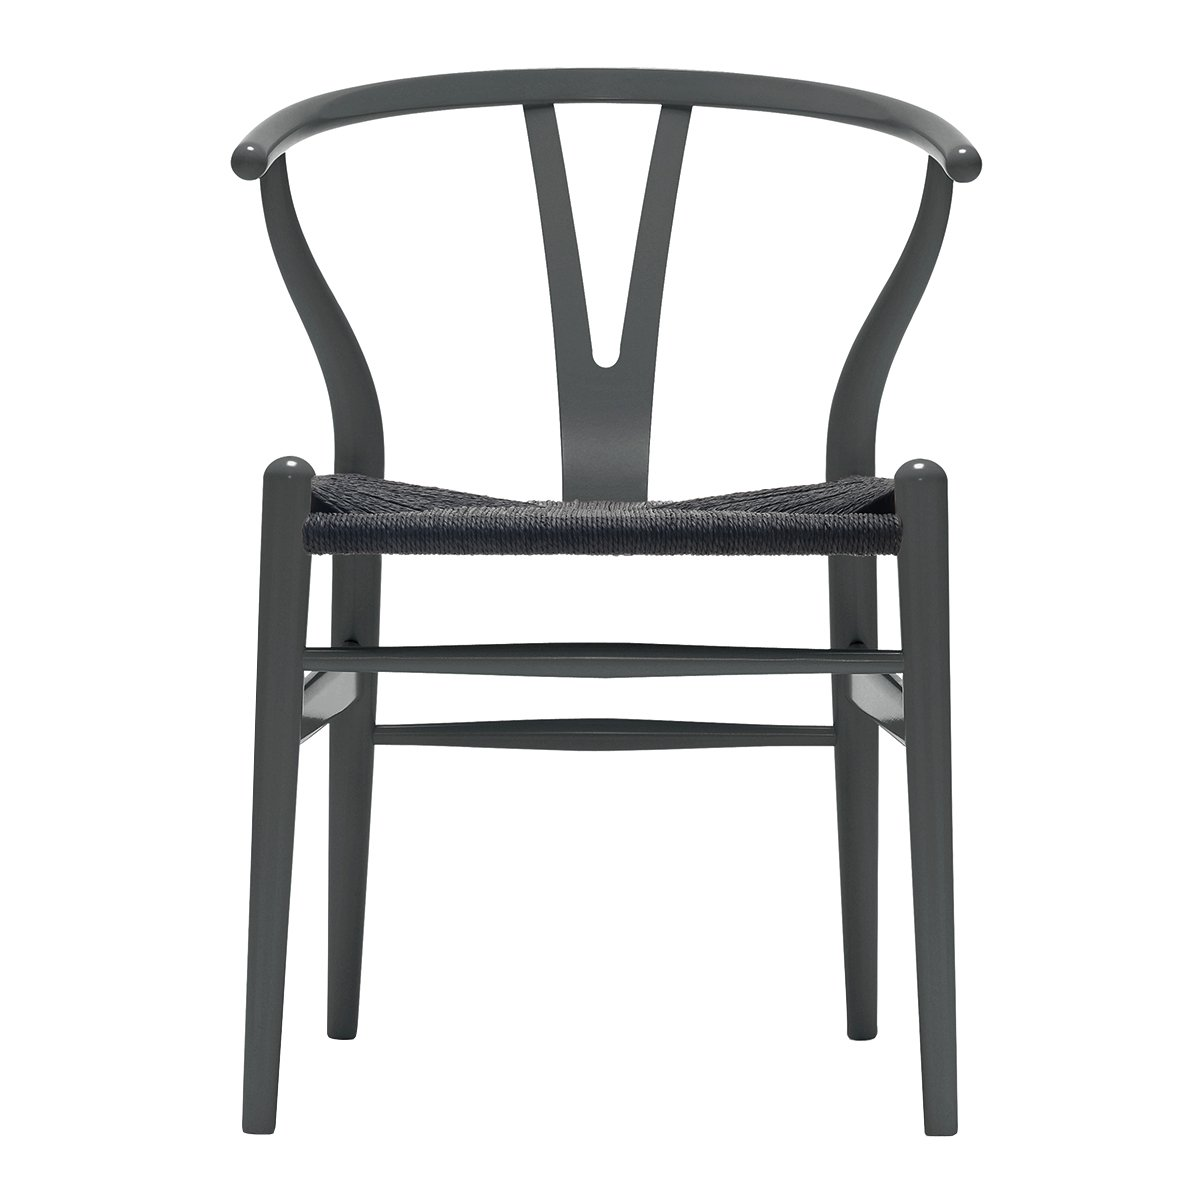 Carl Hansen Wishbone Chair NCS S7502-B - Zwart